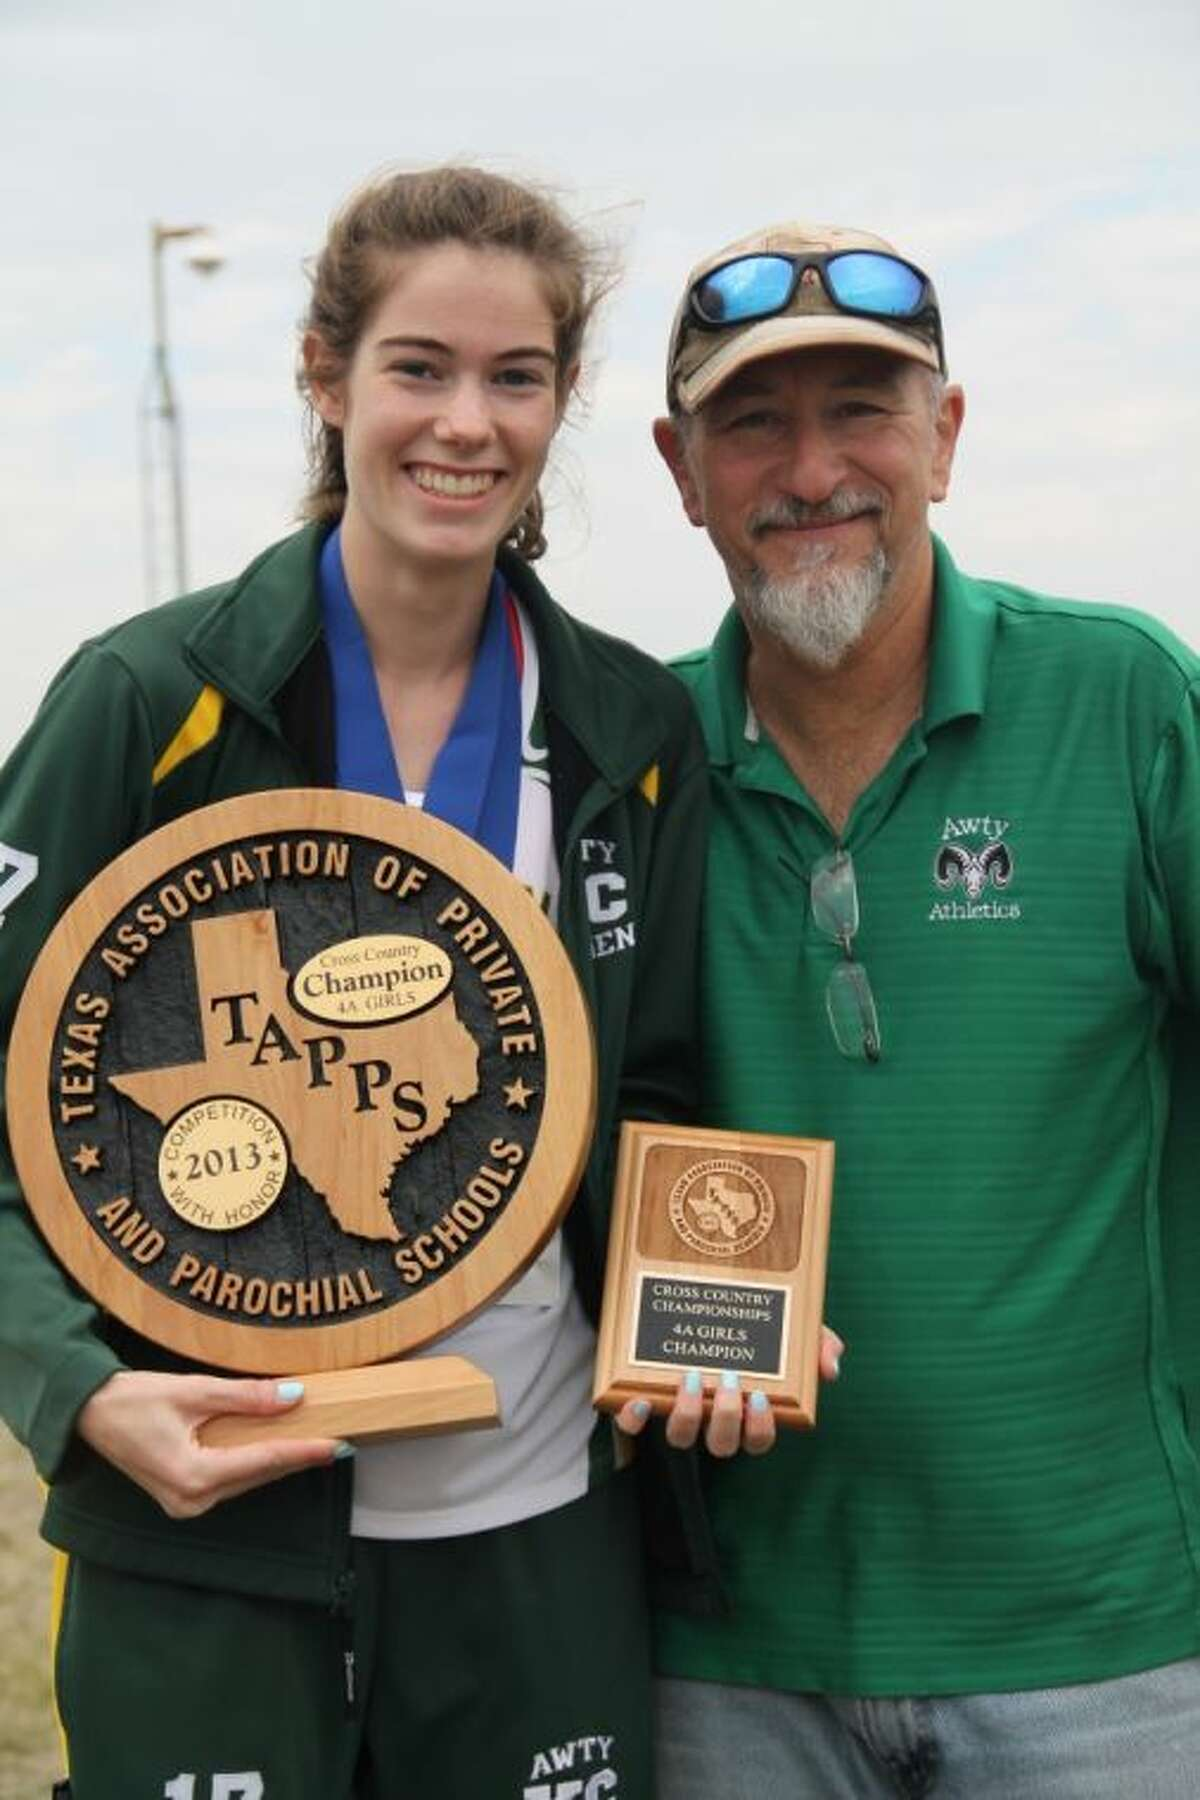 Awty International senior Isabelle Grant, shown with Awty International cross country head coach Robert Sload, holds both the individual plaque she received for winning the TAPPS 4A girls cross country state championship Saturday morning and the team award, the Lady Rams earned by winning the state championship.